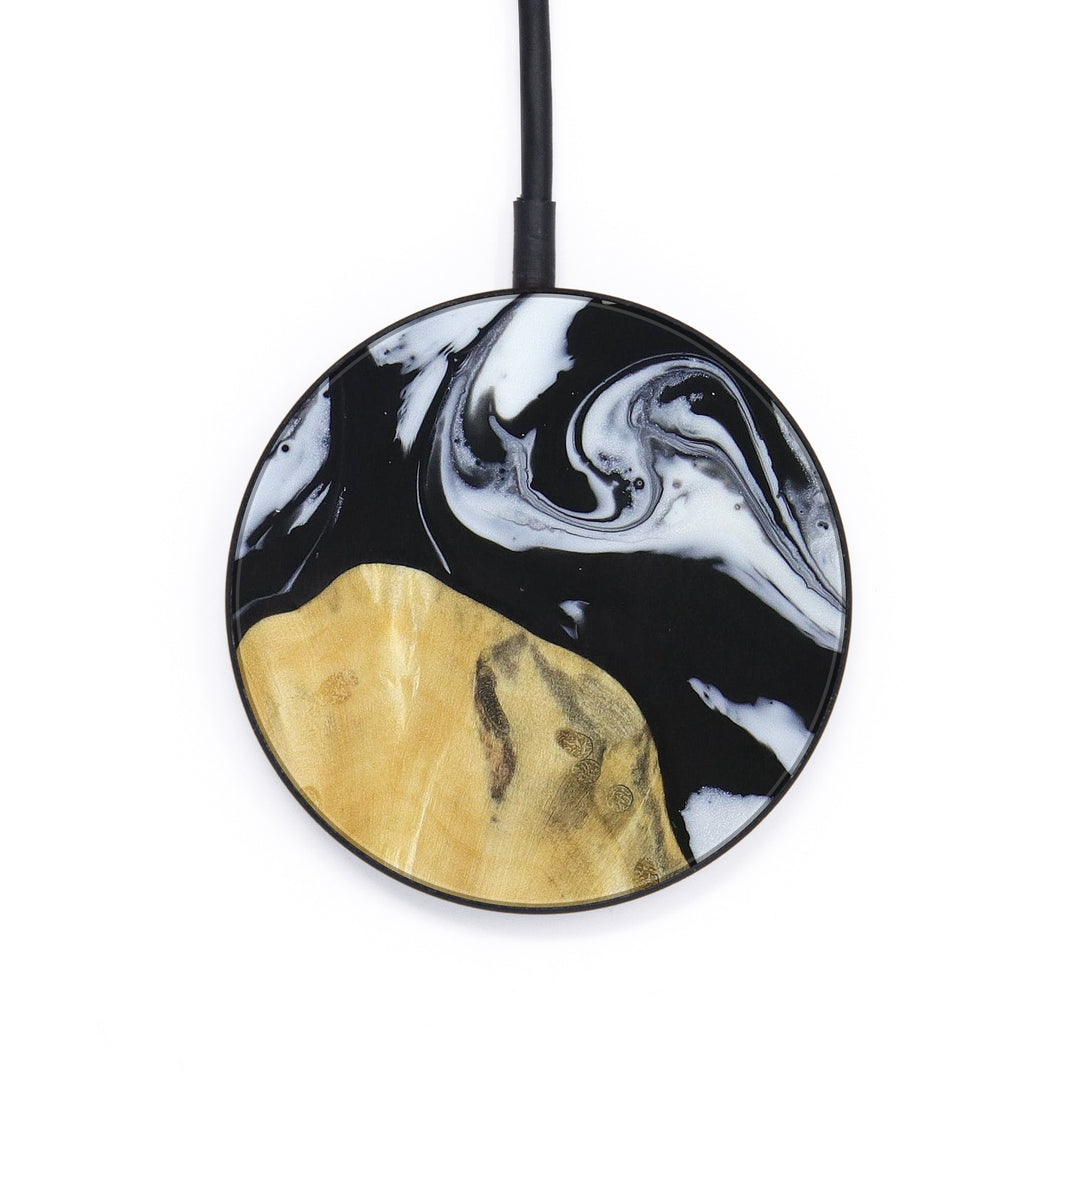 Circle Wood+Resin Wireless Charger - Weiping (Black & White, 403743)